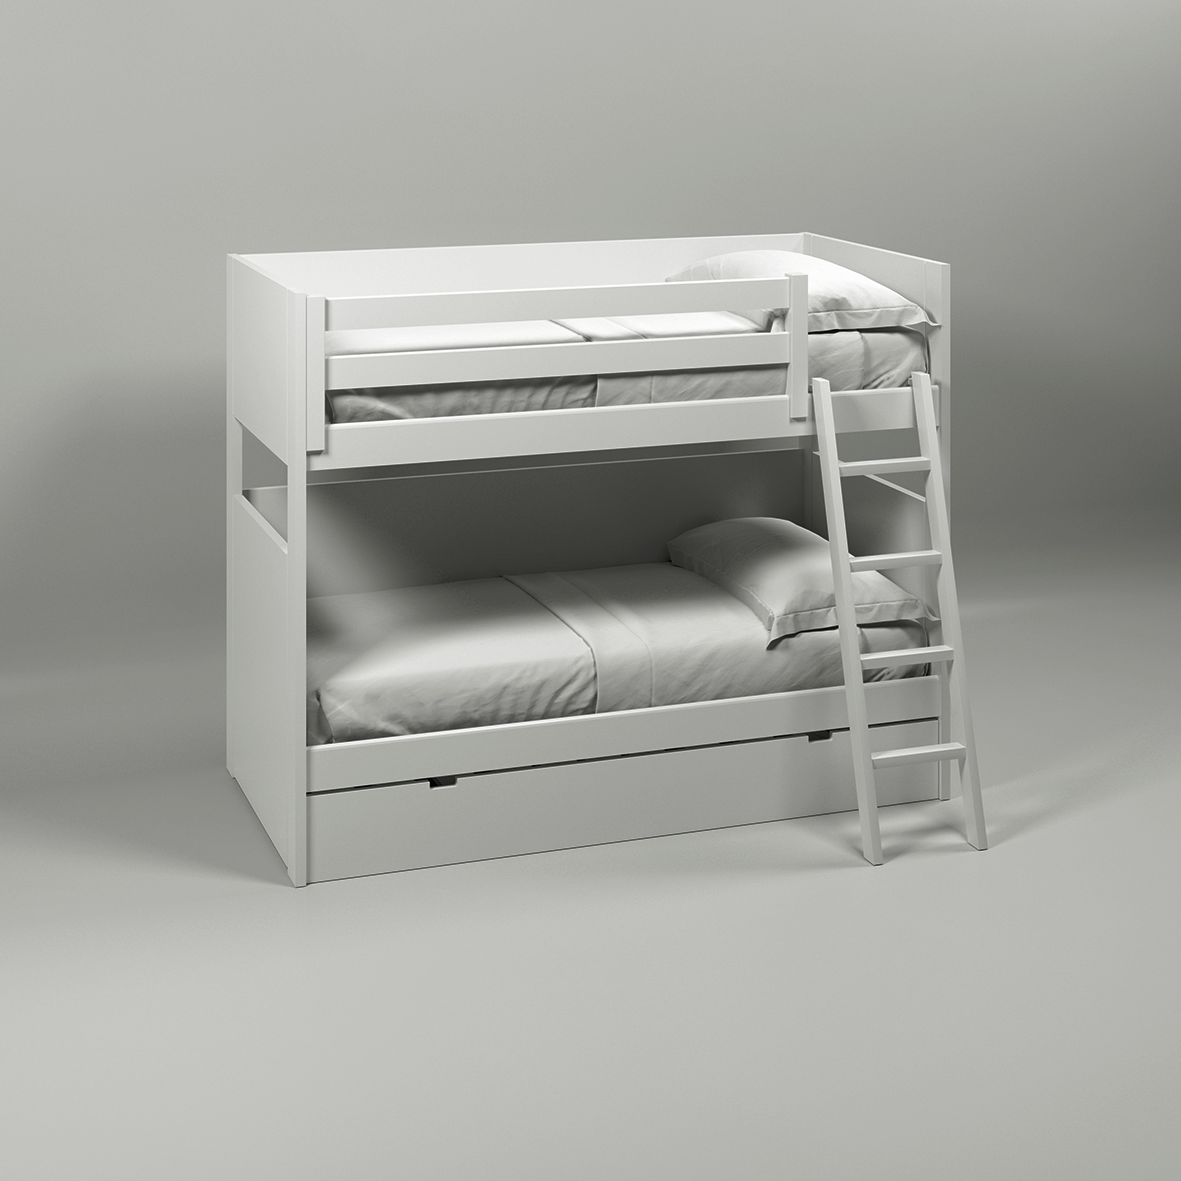 Litera bunked XL